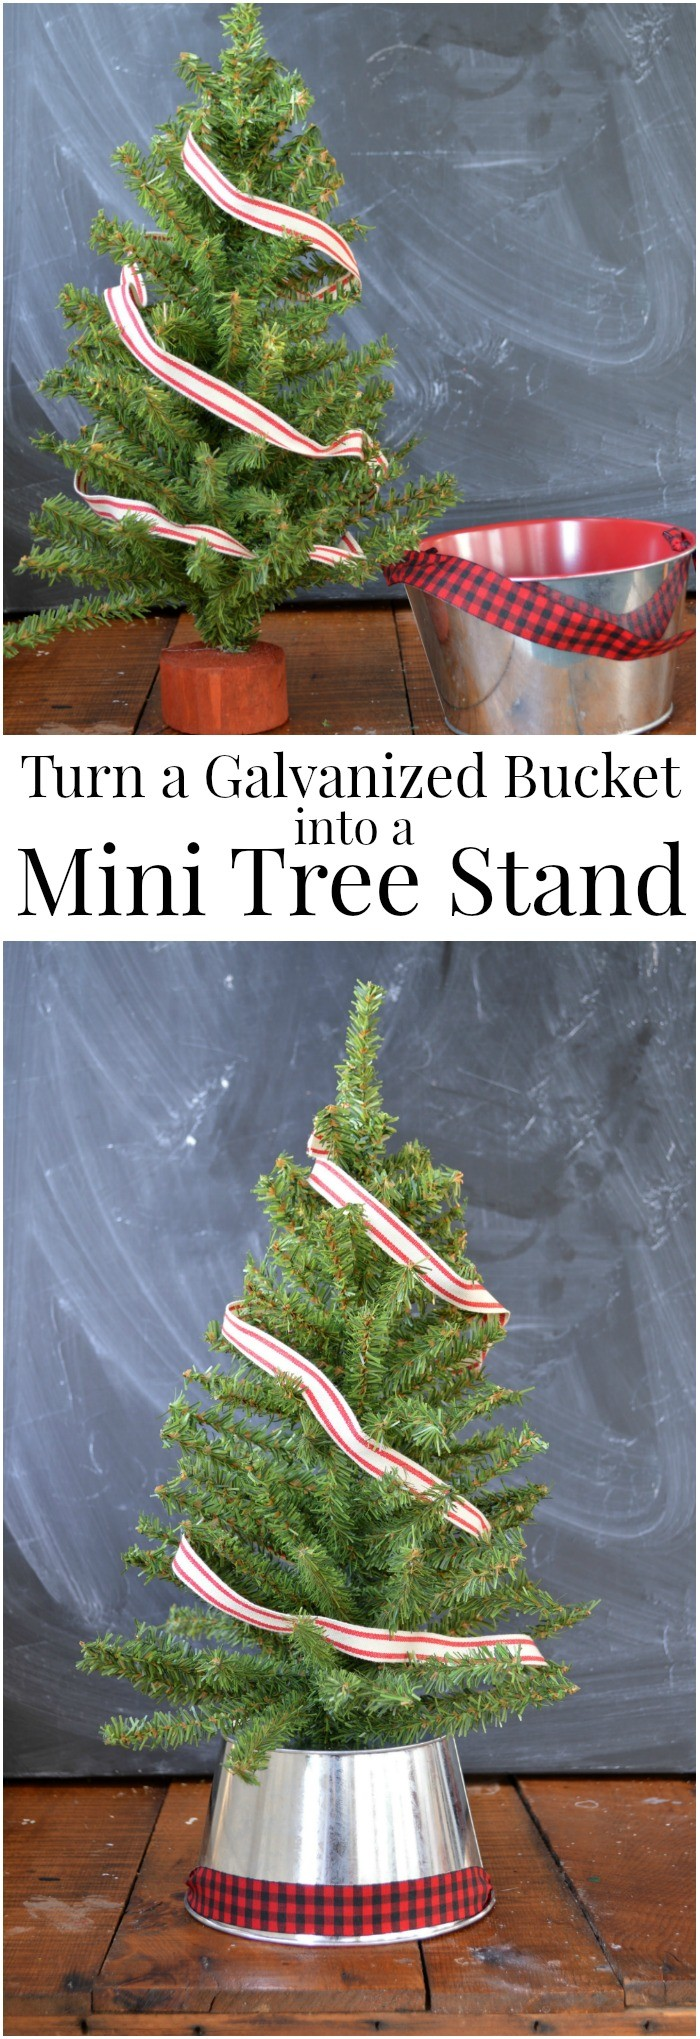 turn-a-galvanized-bucket-into-a-mini-tree-stand